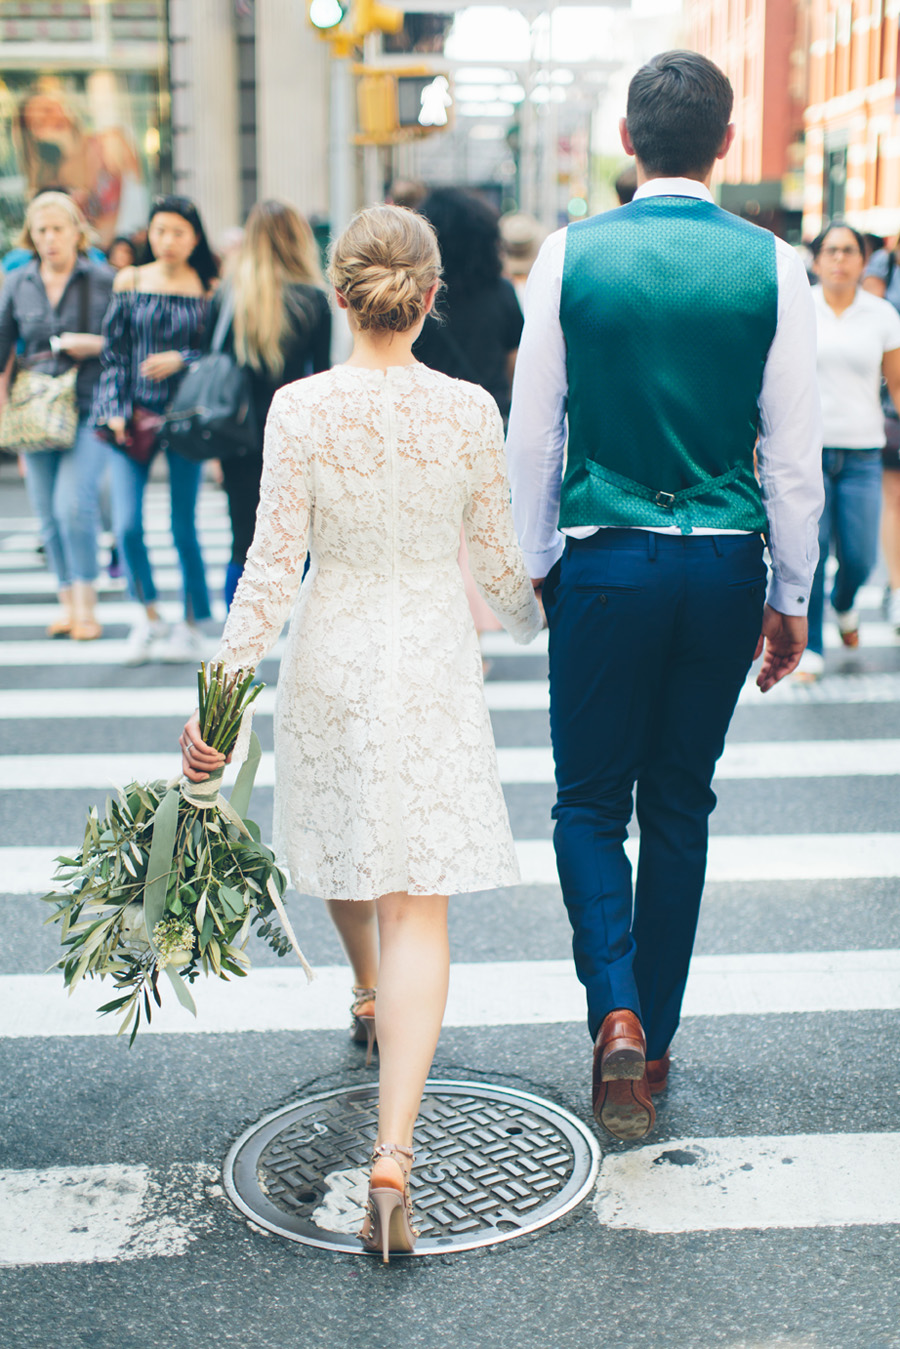 NYC-WEDDING-PHOTOGRAPHER-NY-CITYHALL-DESTINATION-ELOPEMENT-INTIMATE-WEDDING-CENTRAL-PARK-BROOKLYN-WEDDING-WILLIAMSBURG-SOHO-CHELSEA-THE-HIGH-LINE-046.jpg